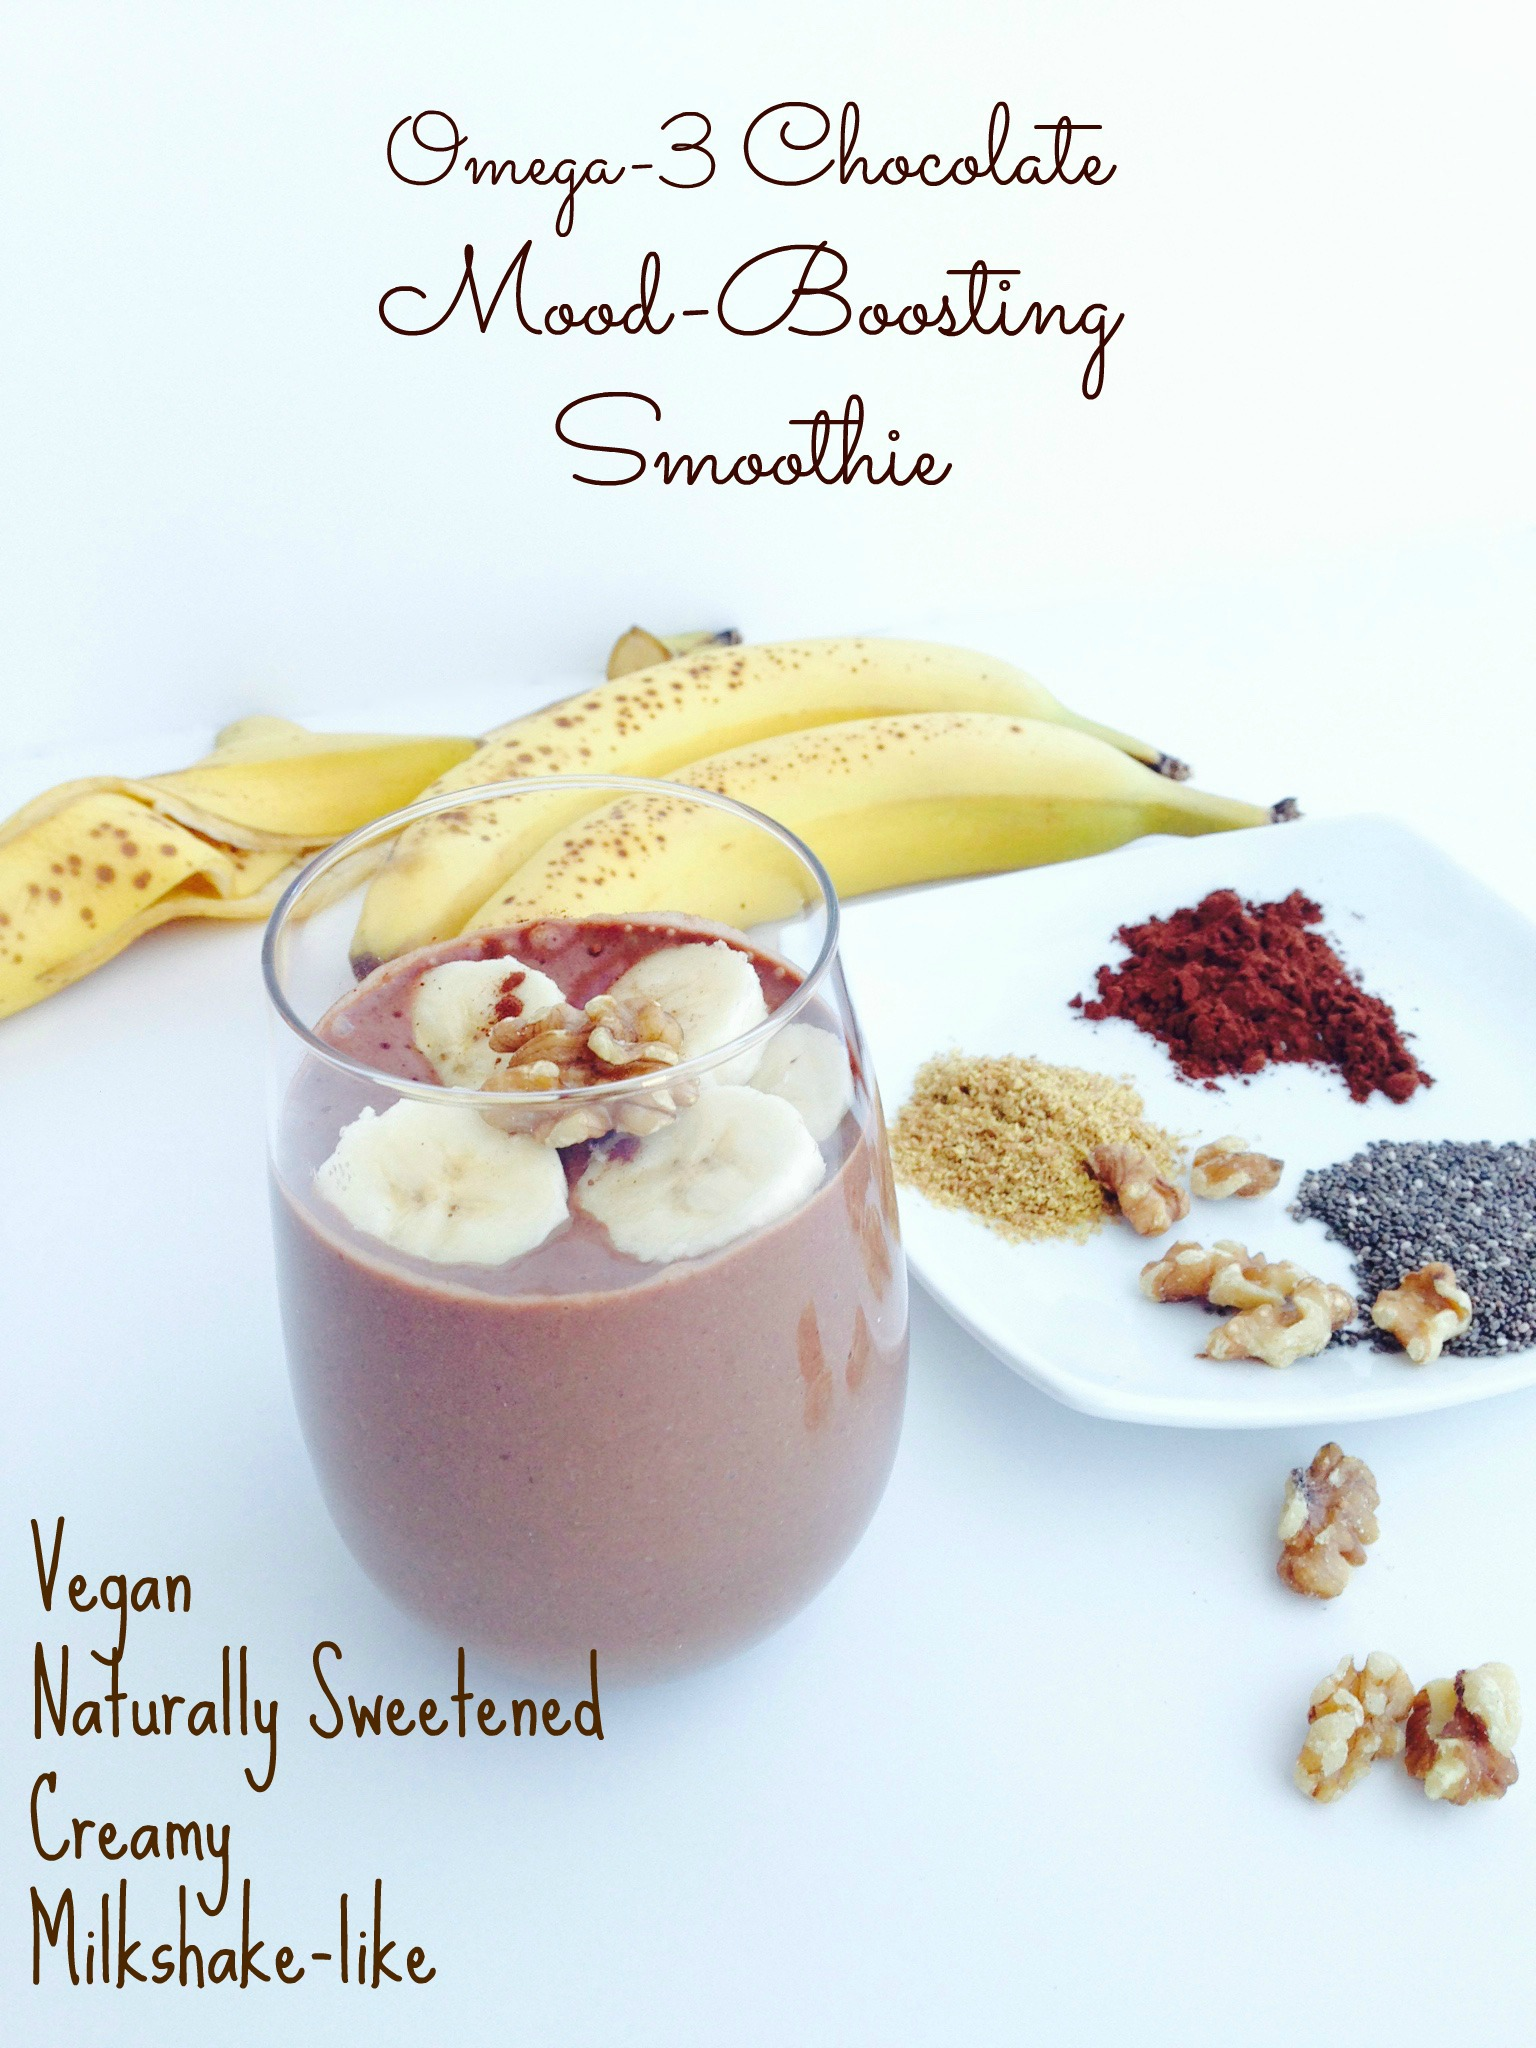 omega-3 chocolate mood-boosting smoothie with bananas cocoa walnuts flax chia